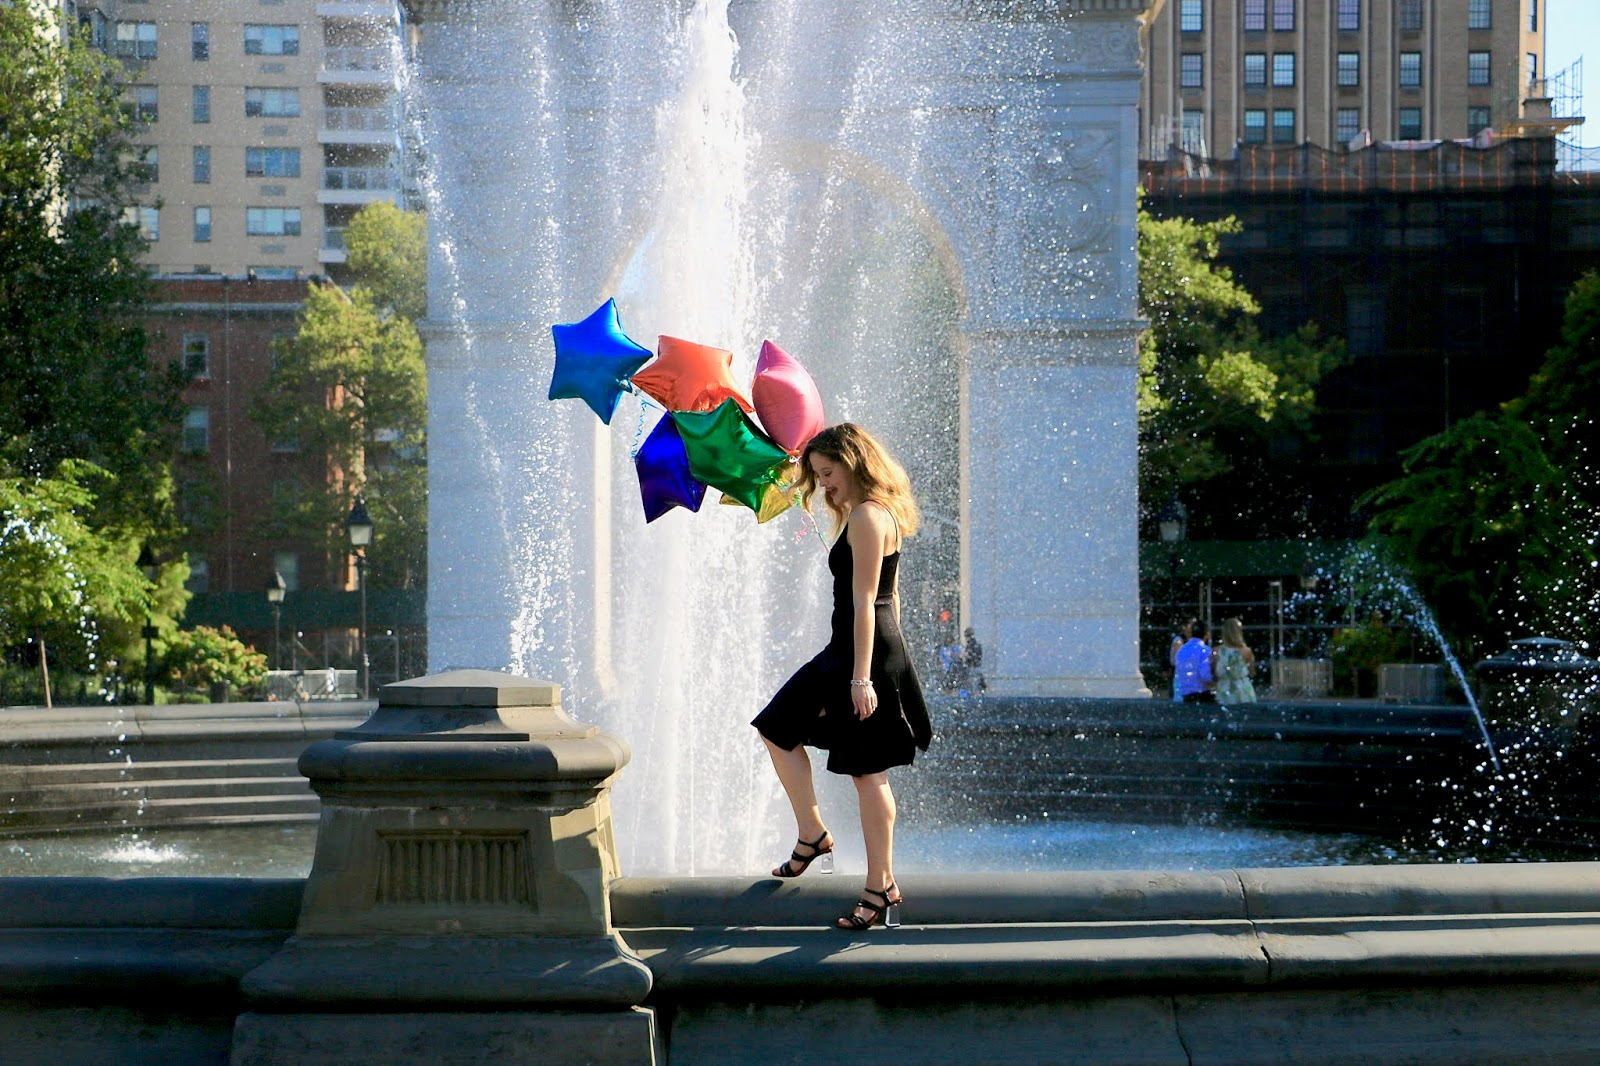 Nyc fashion blogger Kathleen Harper's birthday photo shoot in Washington Square Park with balloons.